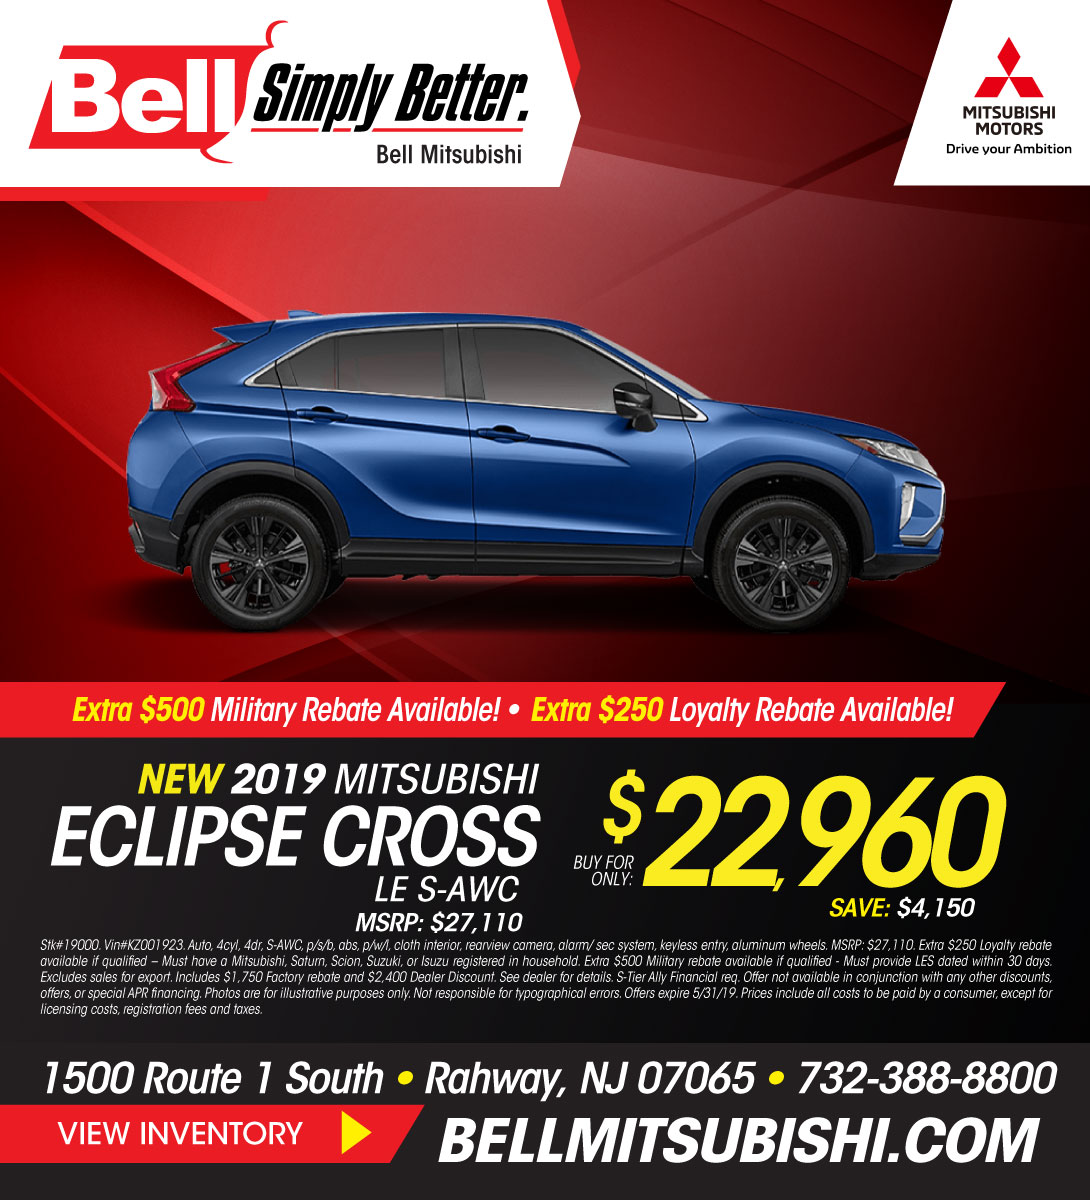 BLM-629-Landing-Pages_2019-Eclipse-Cross-LE-S_BUY.jpg